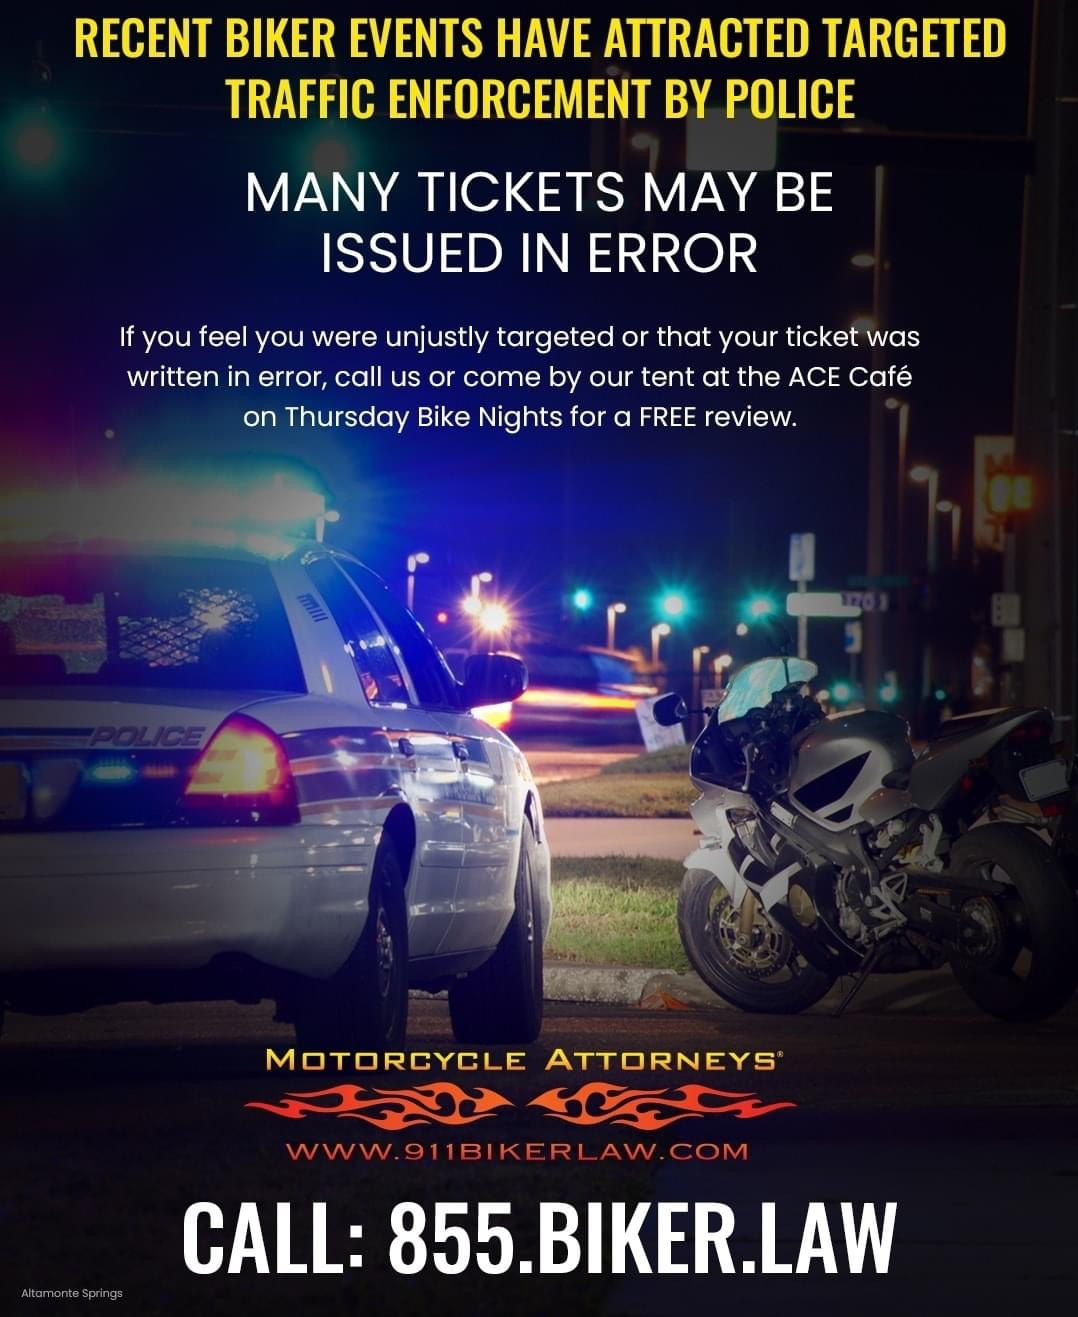 How 911 Biker Law Can Help With Motorcycle Tickets